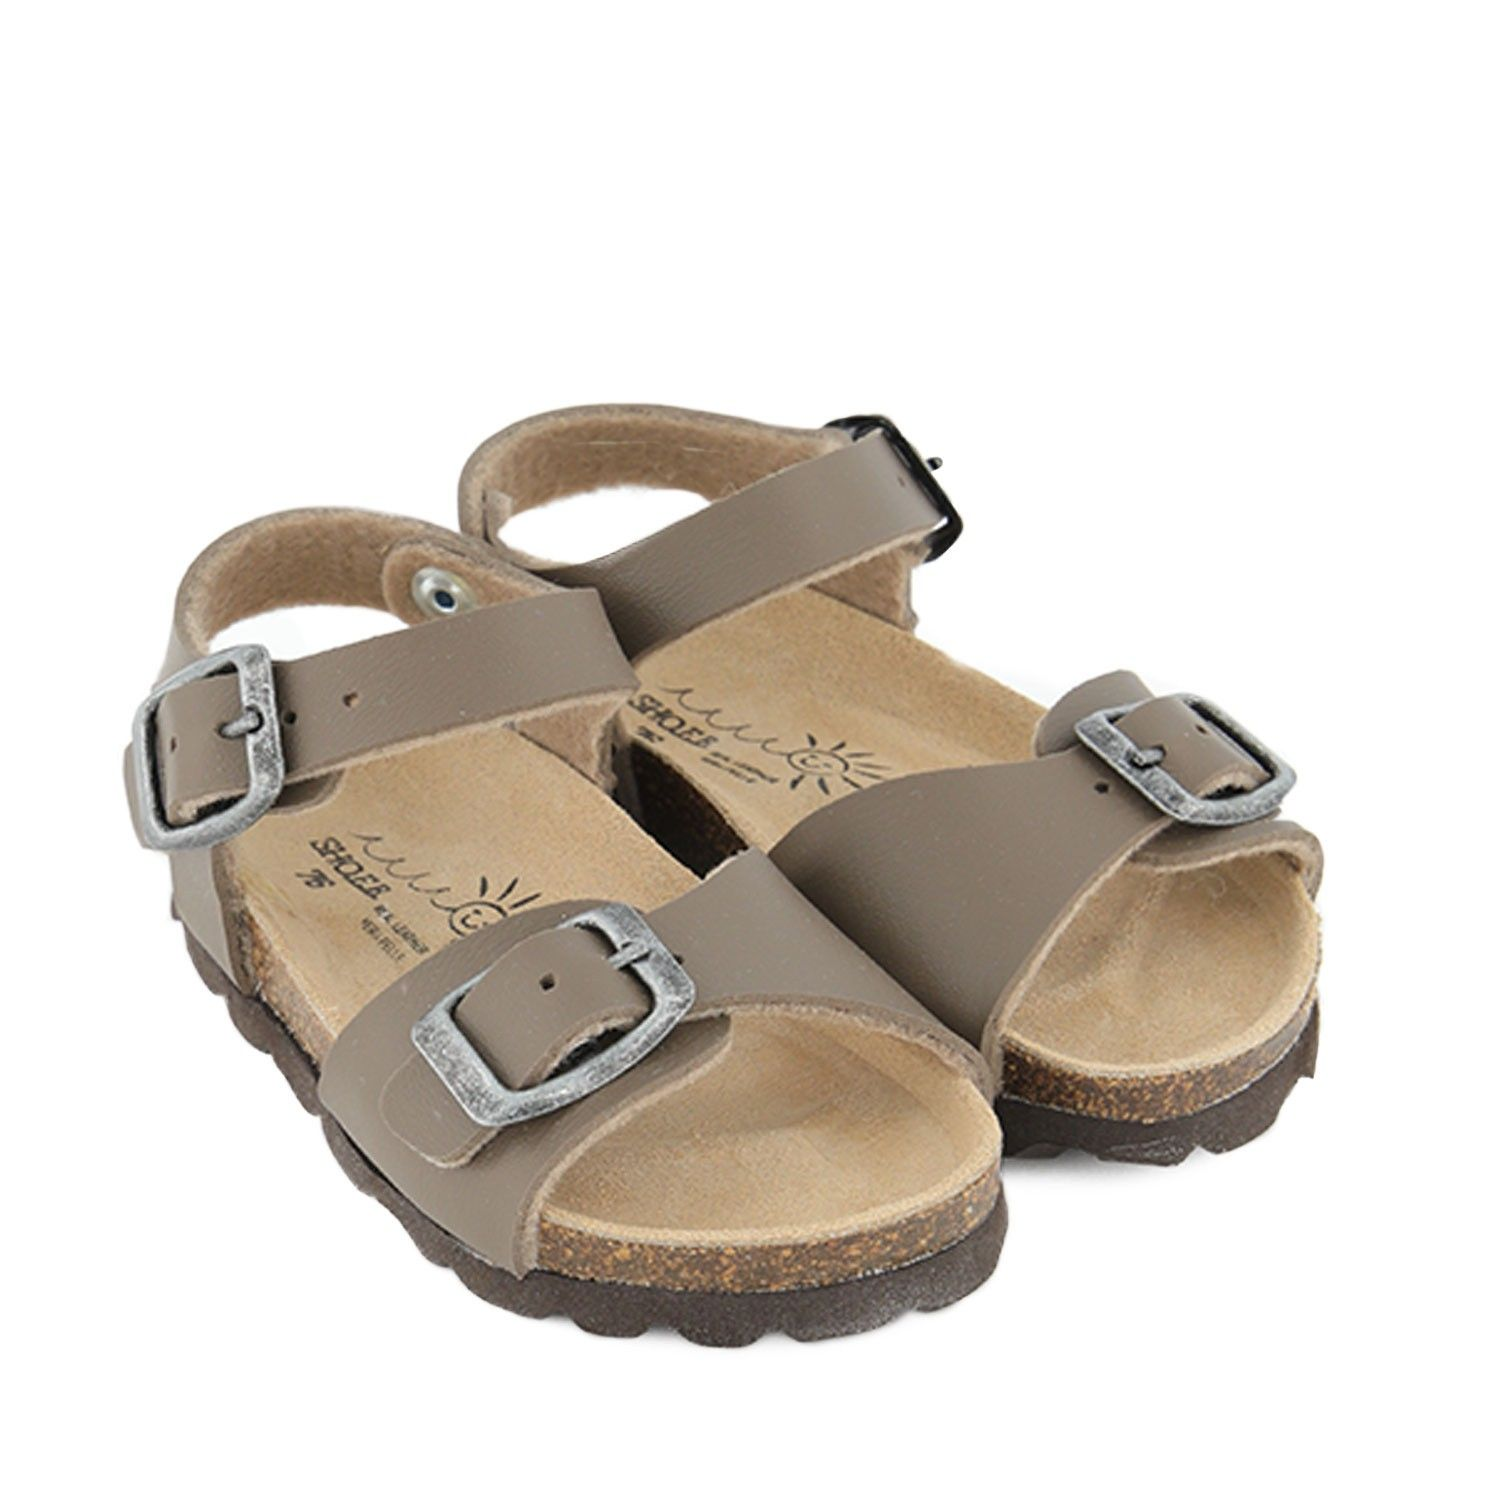 Picture of EB 5102 kids sandals army